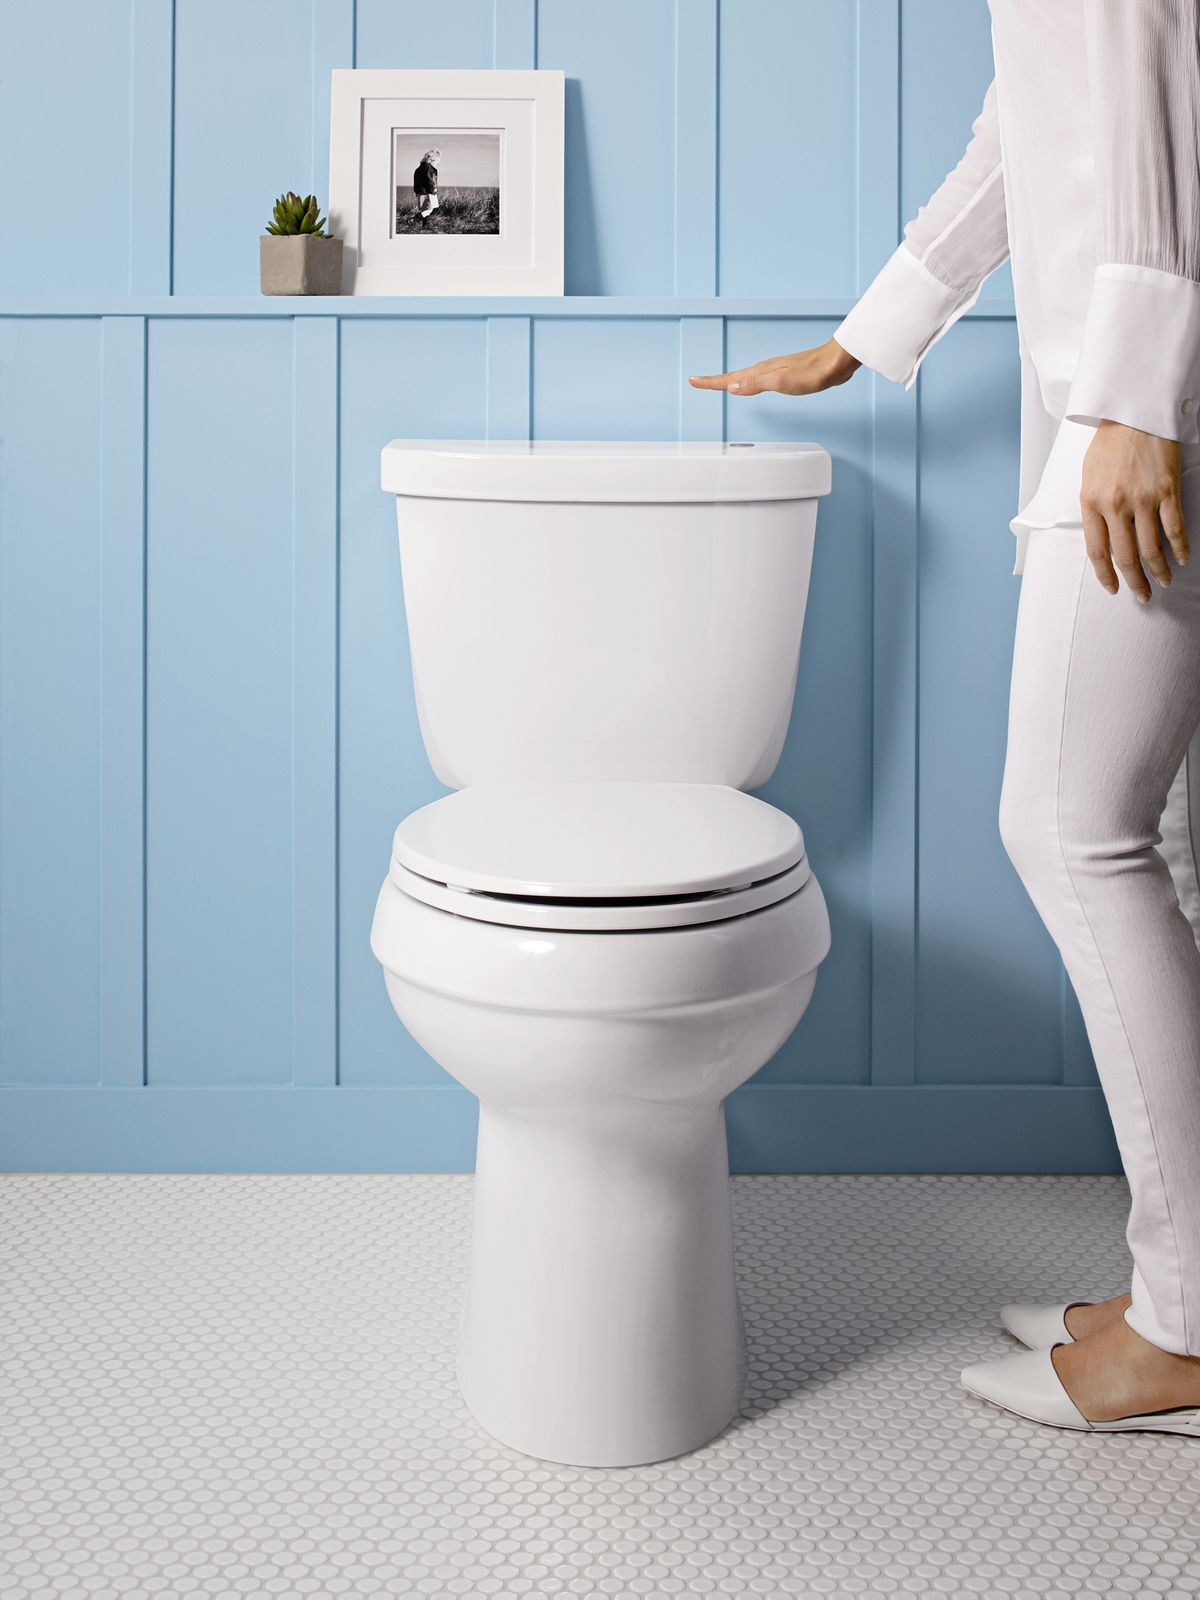 Woman holding hand over the hands-free flush feature on toilet.